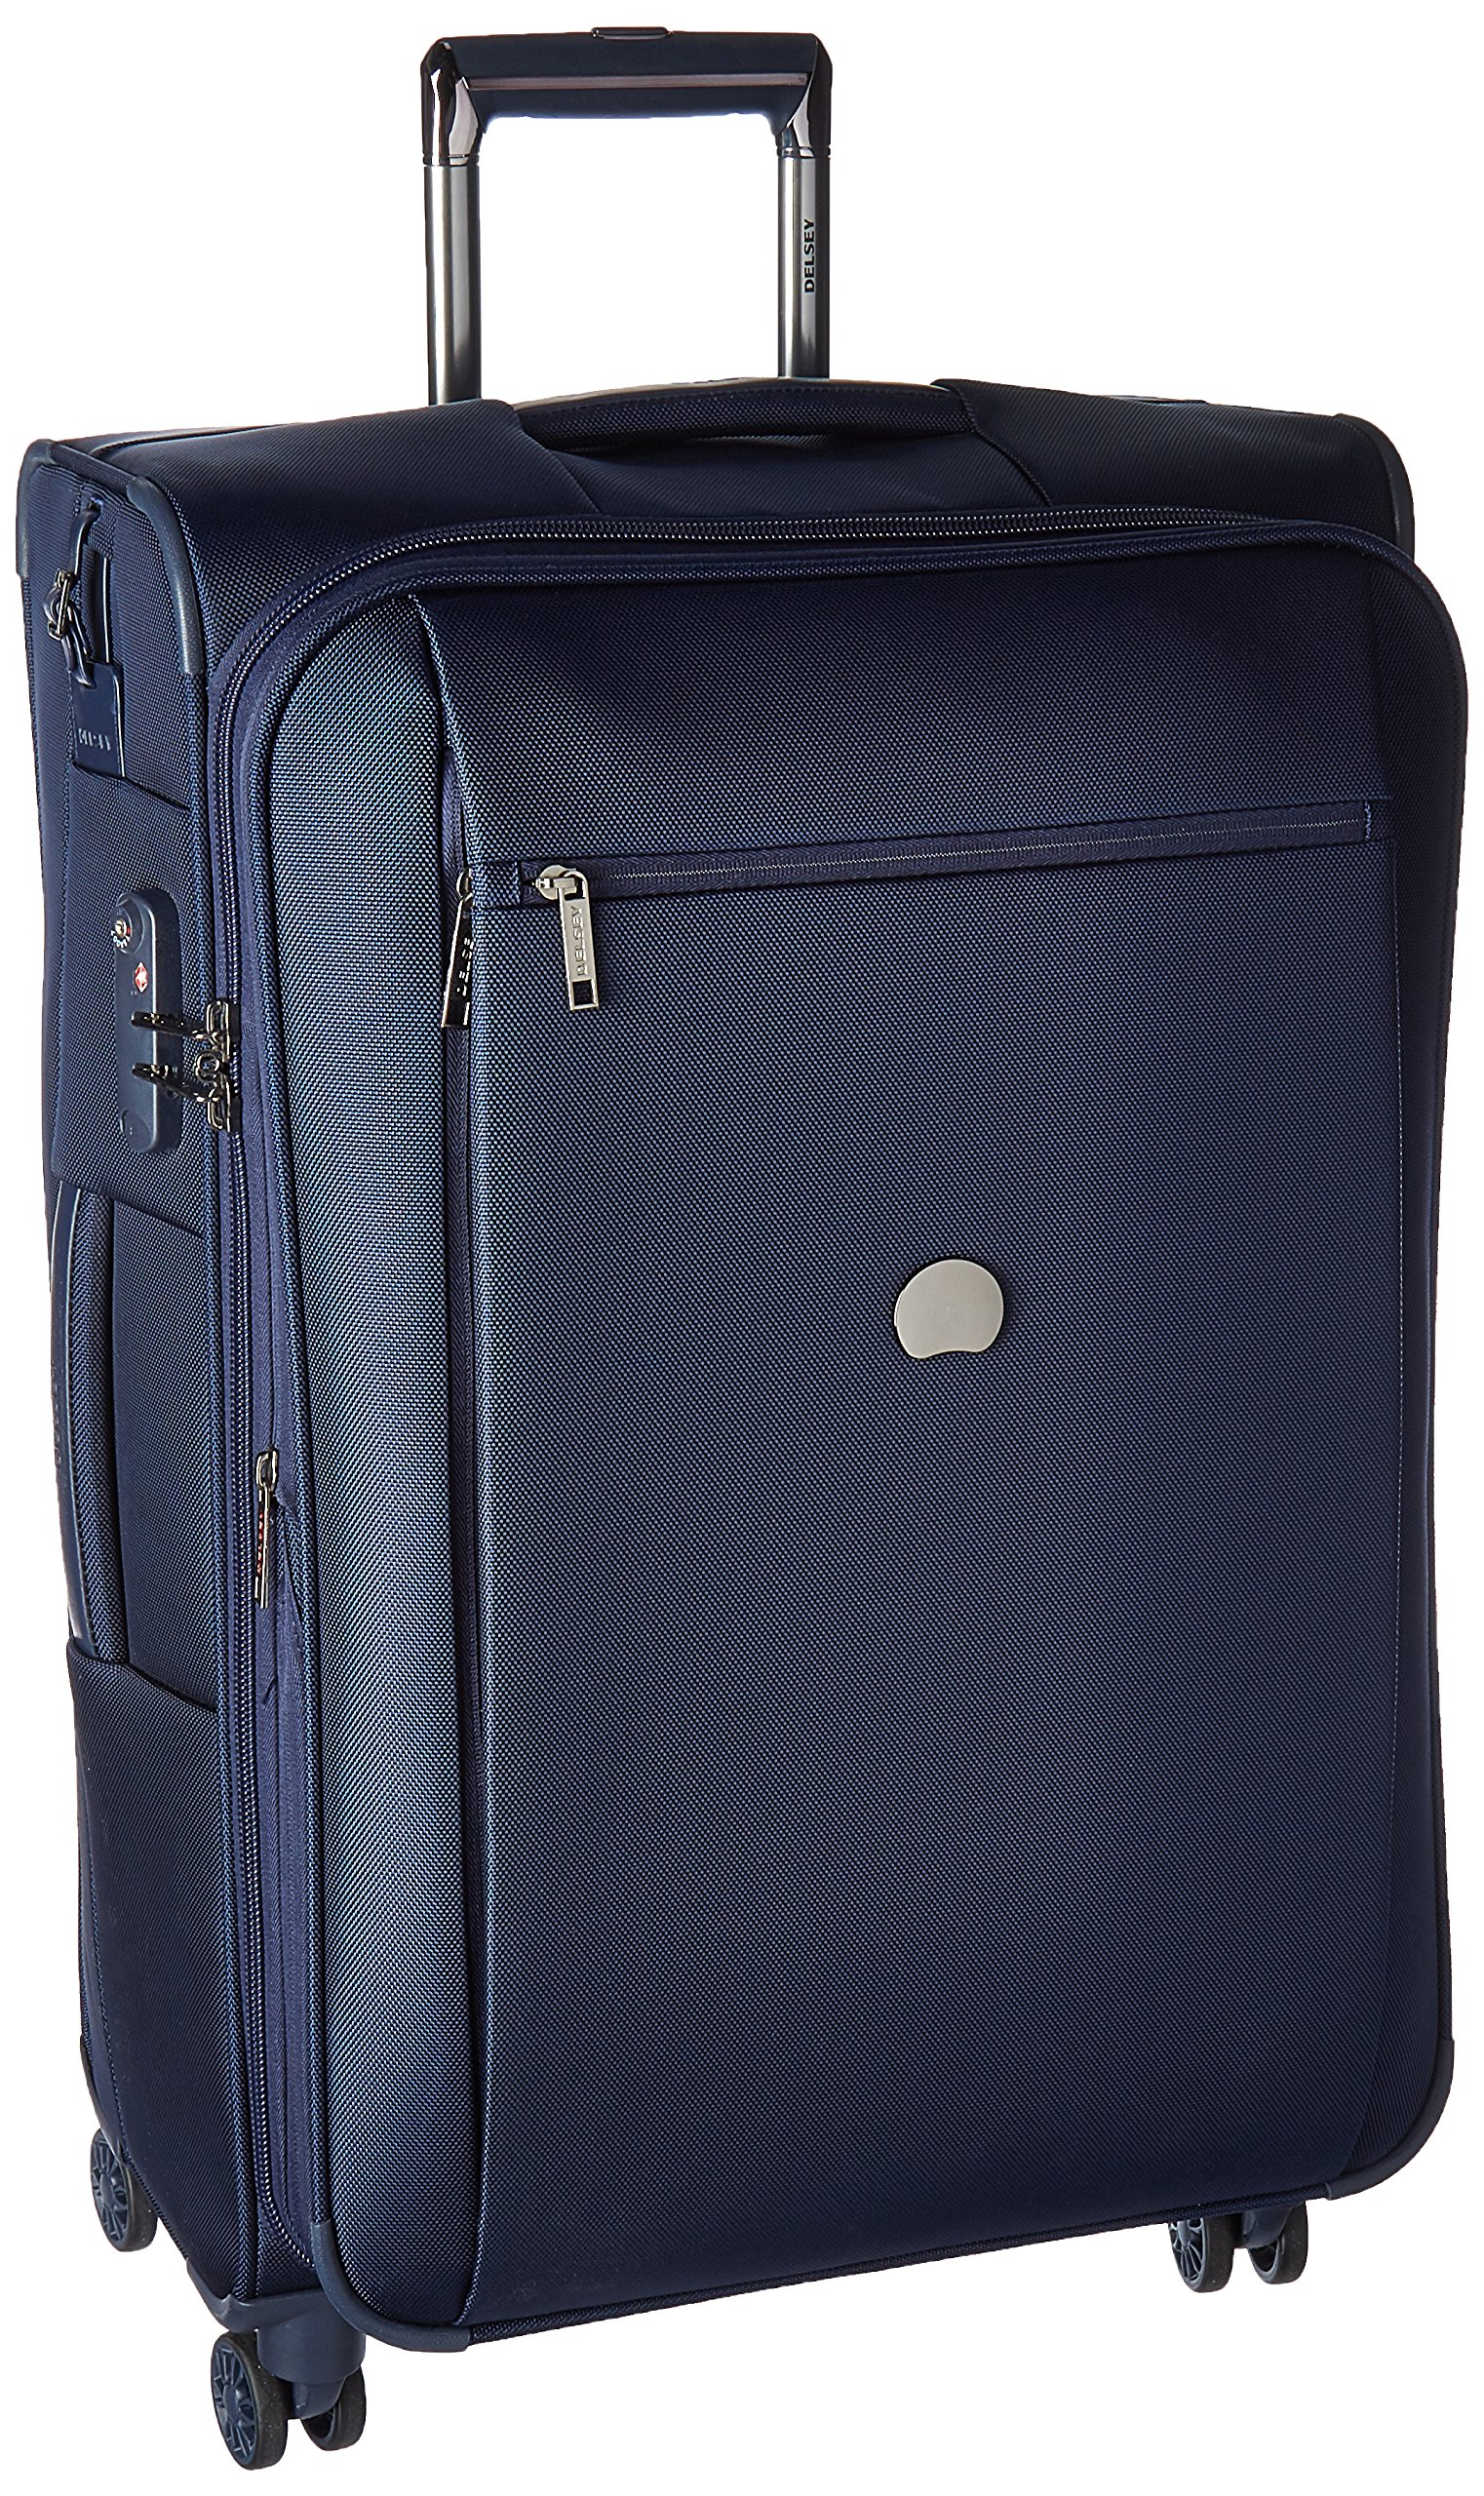 Delsey Luggage Montmartre+ 25 Inch Expandable Softside Spinner Suitcase, Navy